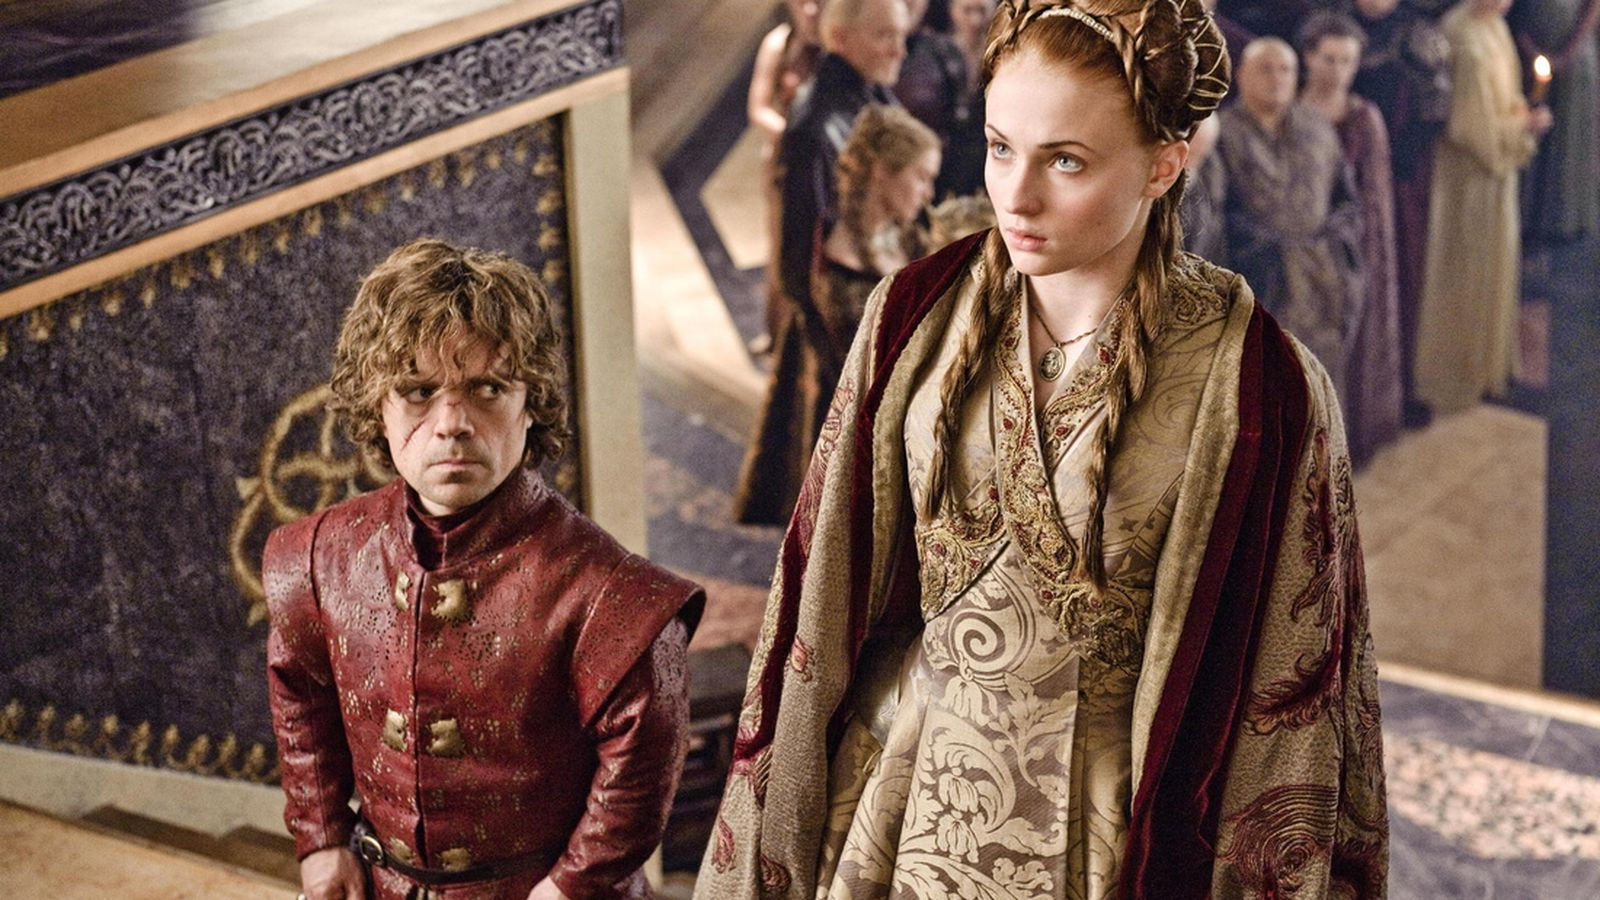 High 'Game of Thrones' piracy is 'better than an Emmy,' says Time Warner CEO - The Verge High 'Game of Thrones' piracy is 'better than an Emmy,' says Time Warner CEO - 웹